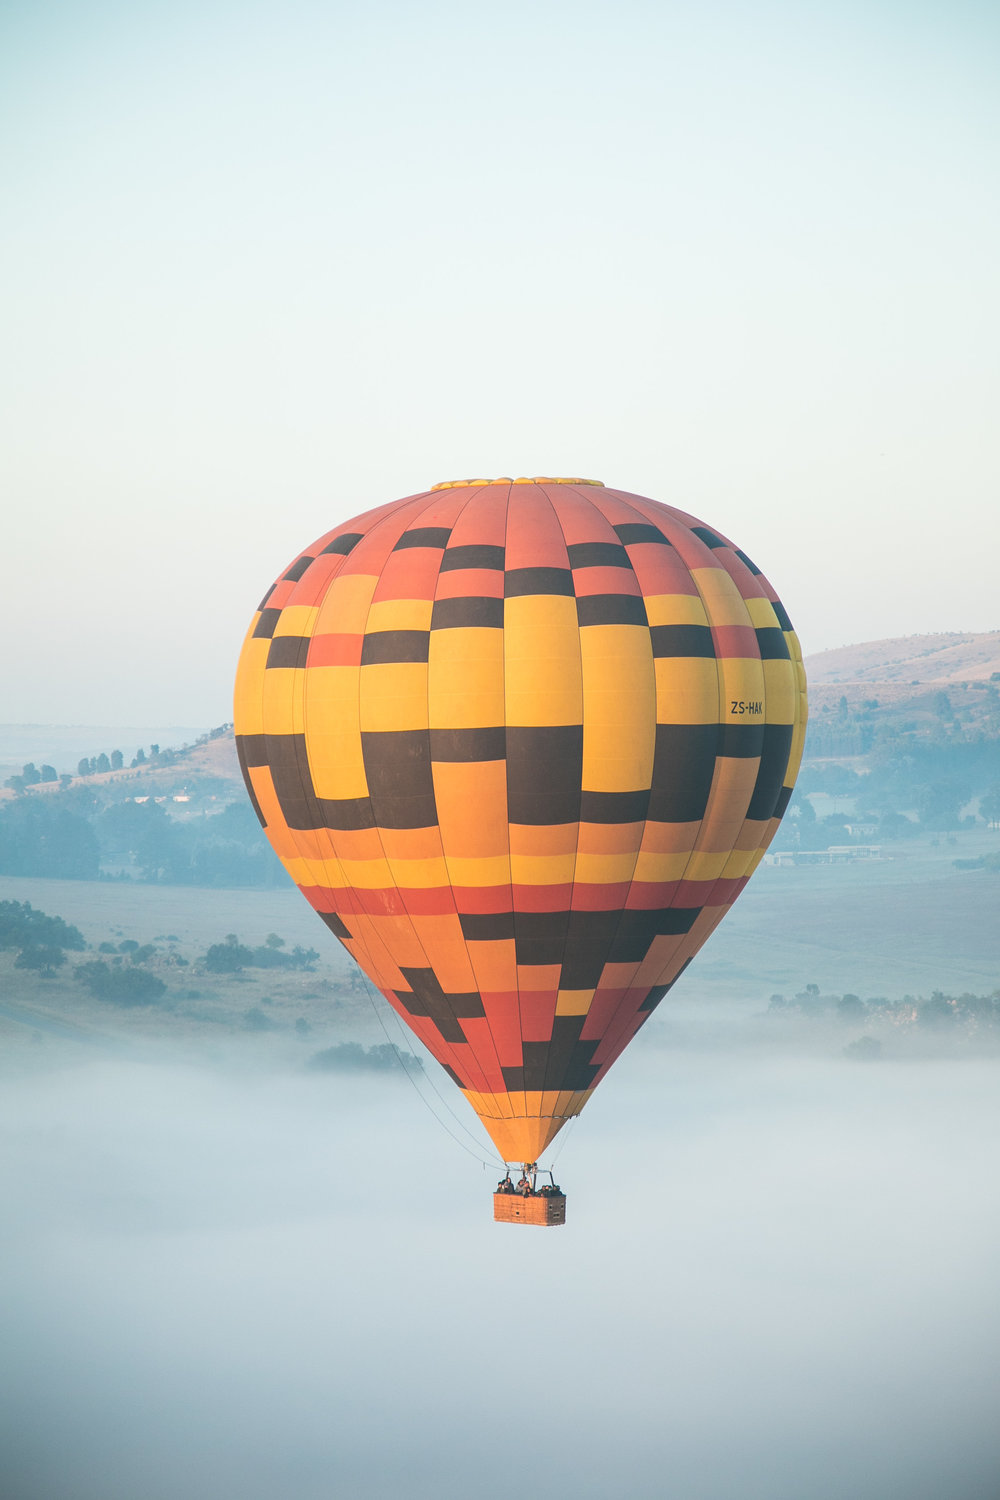 5. Went on a hot air balloon! -